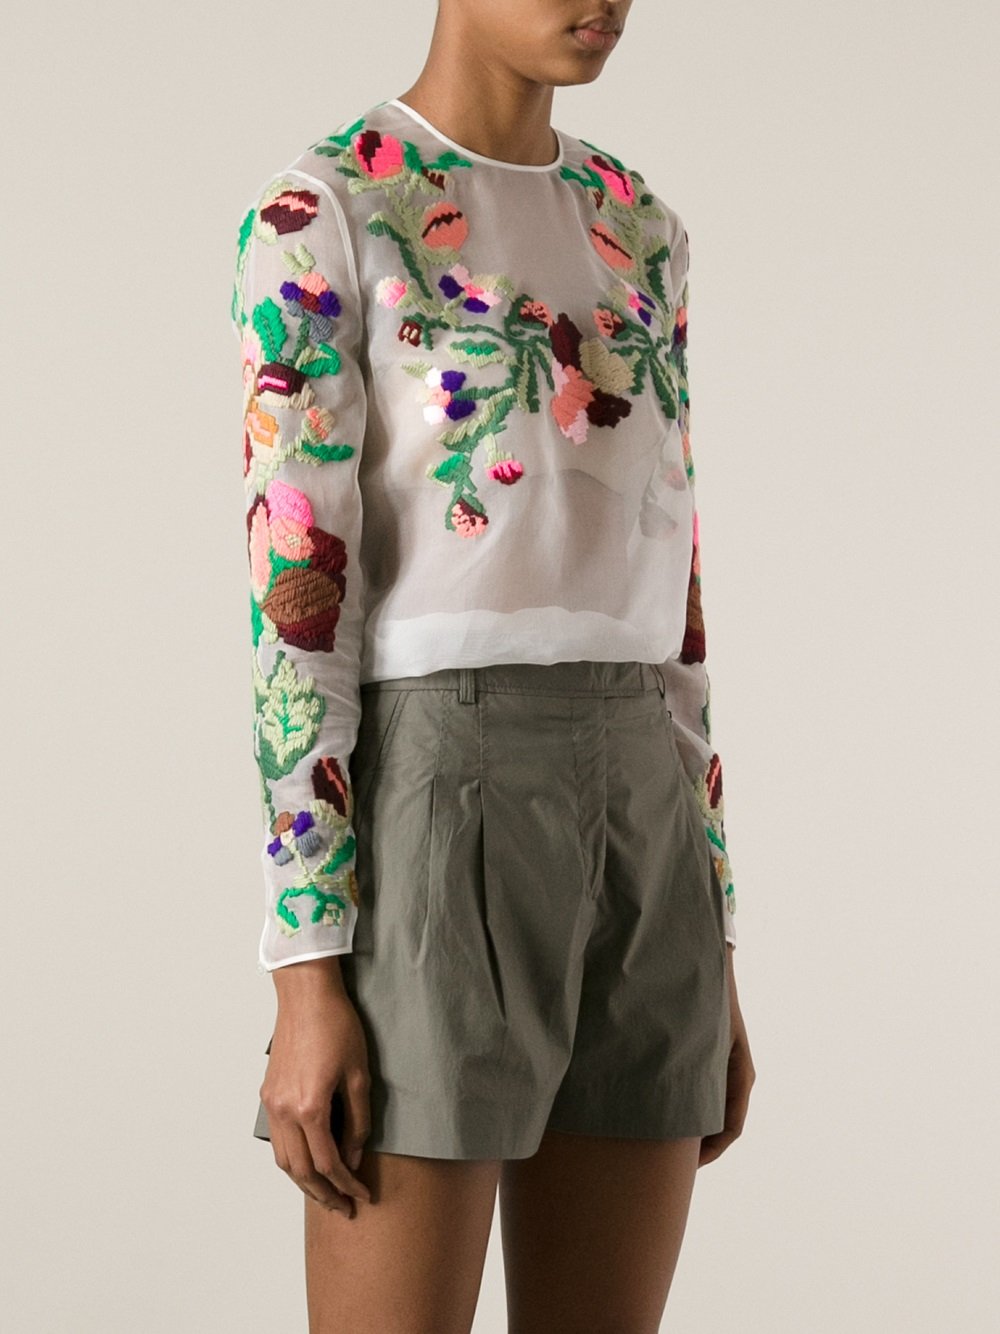 494af3b526d158 Lyst - Valentino Floral Embroidered Top in White